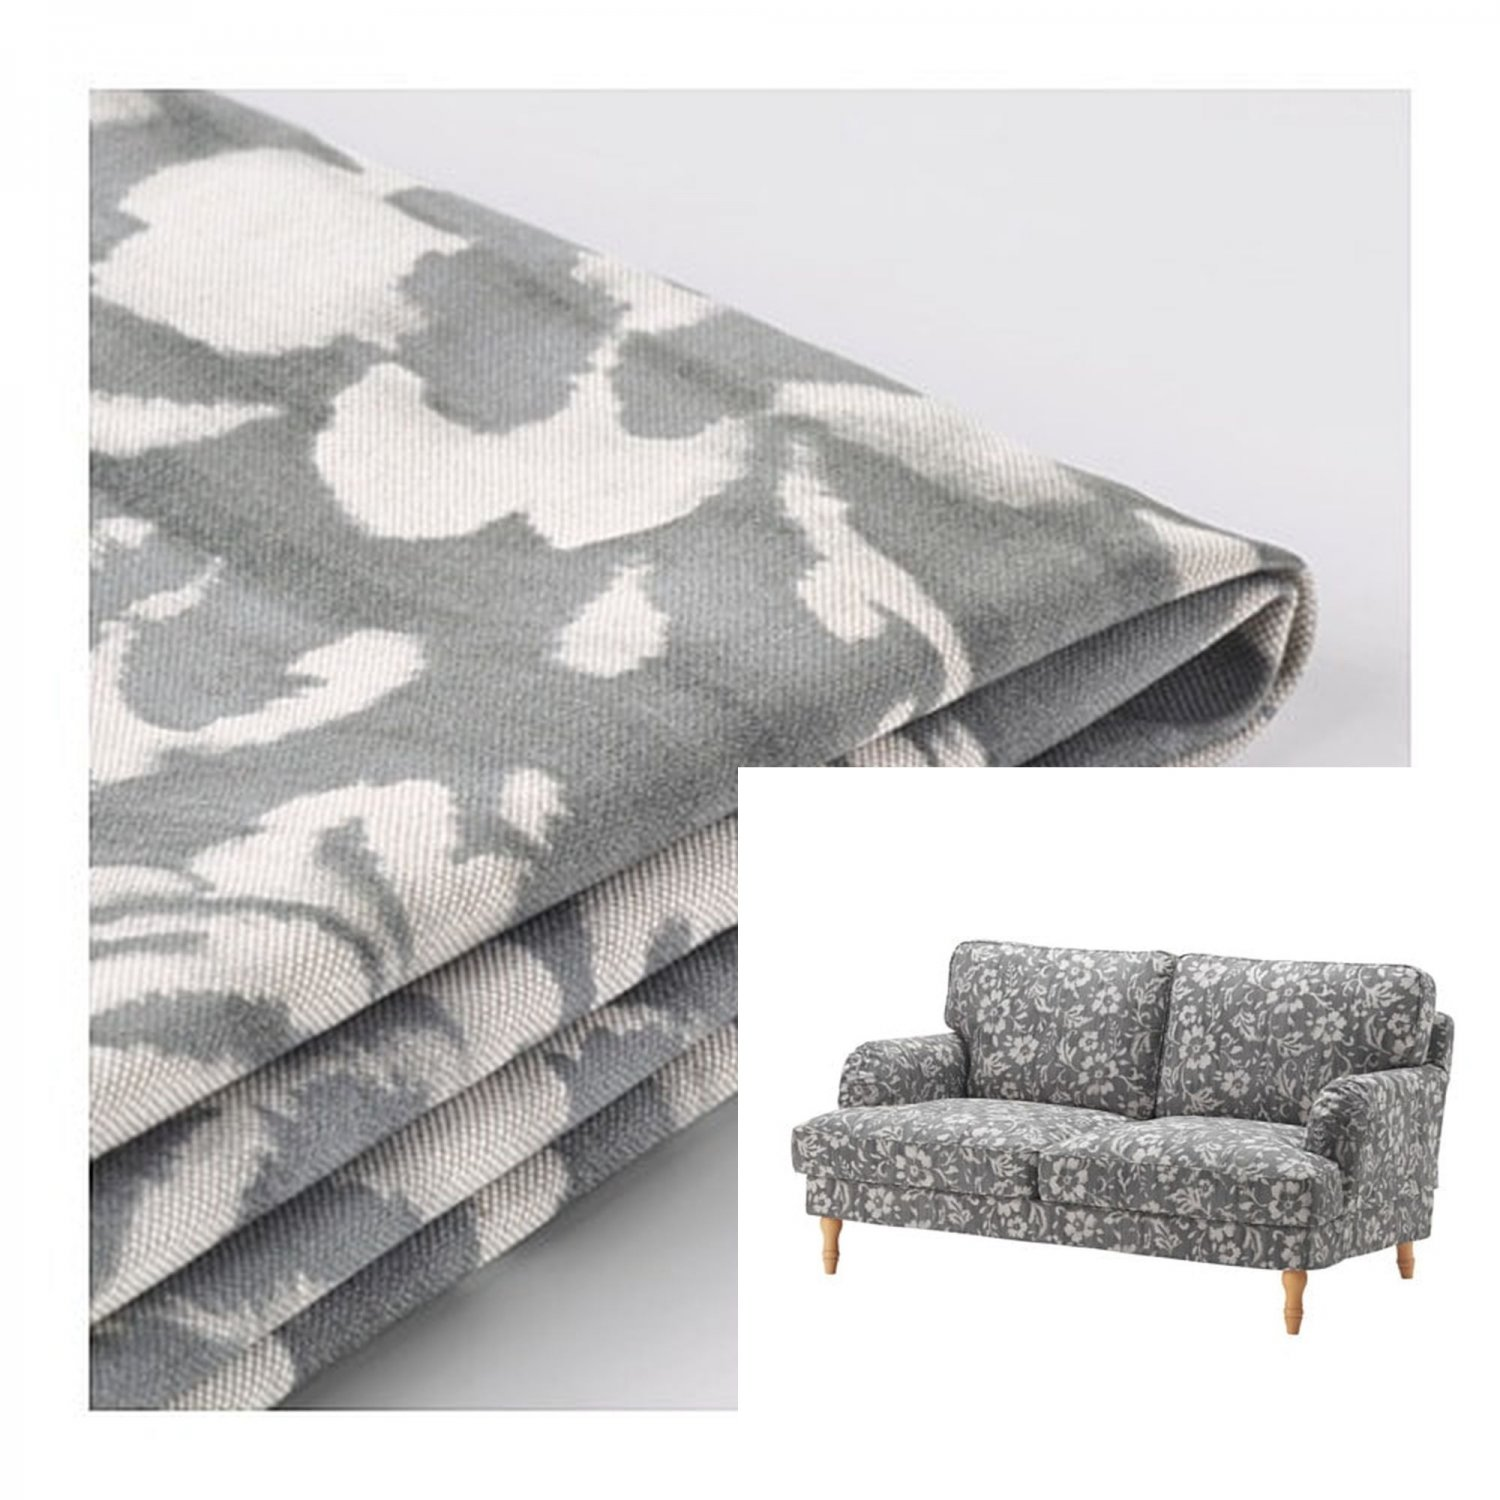 IKEA Stocksund 2 Seat Sofa SLIPCOVER Loveseat Cover HOVSTEN Gray Floral Watercolour Effect Grey